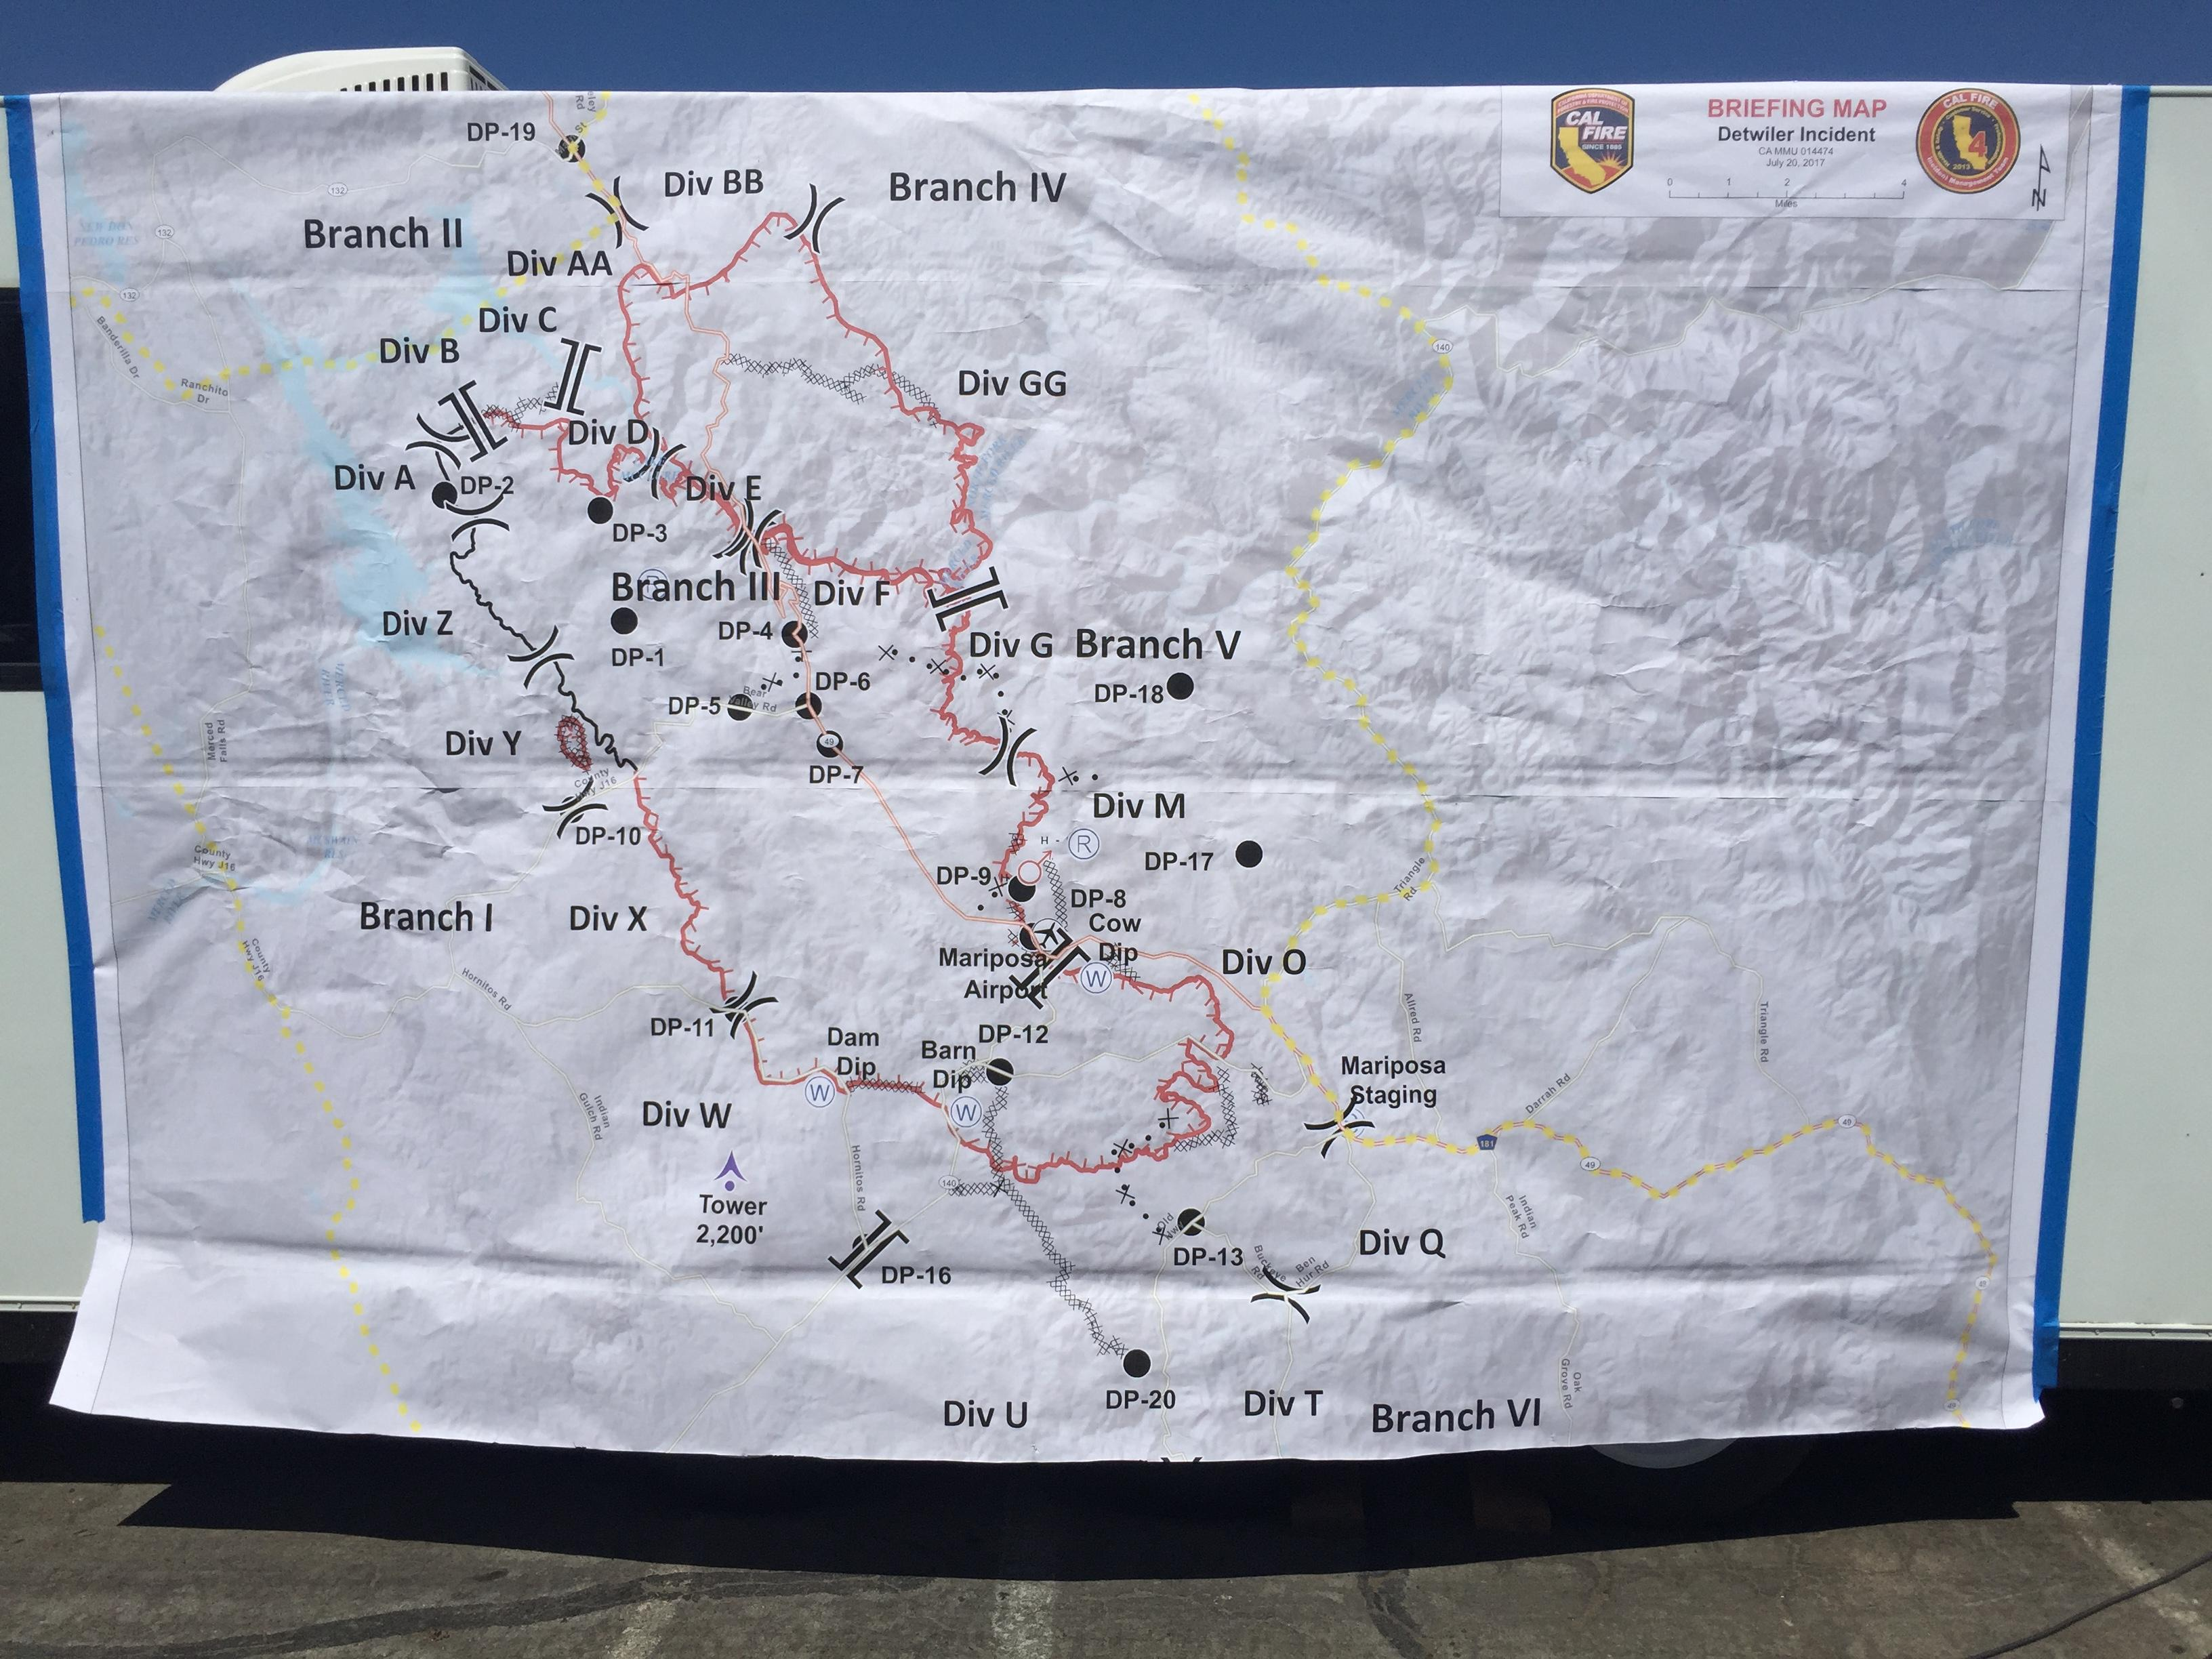 Updated map of the Dewiler Fire from Thursday afternoon briefing